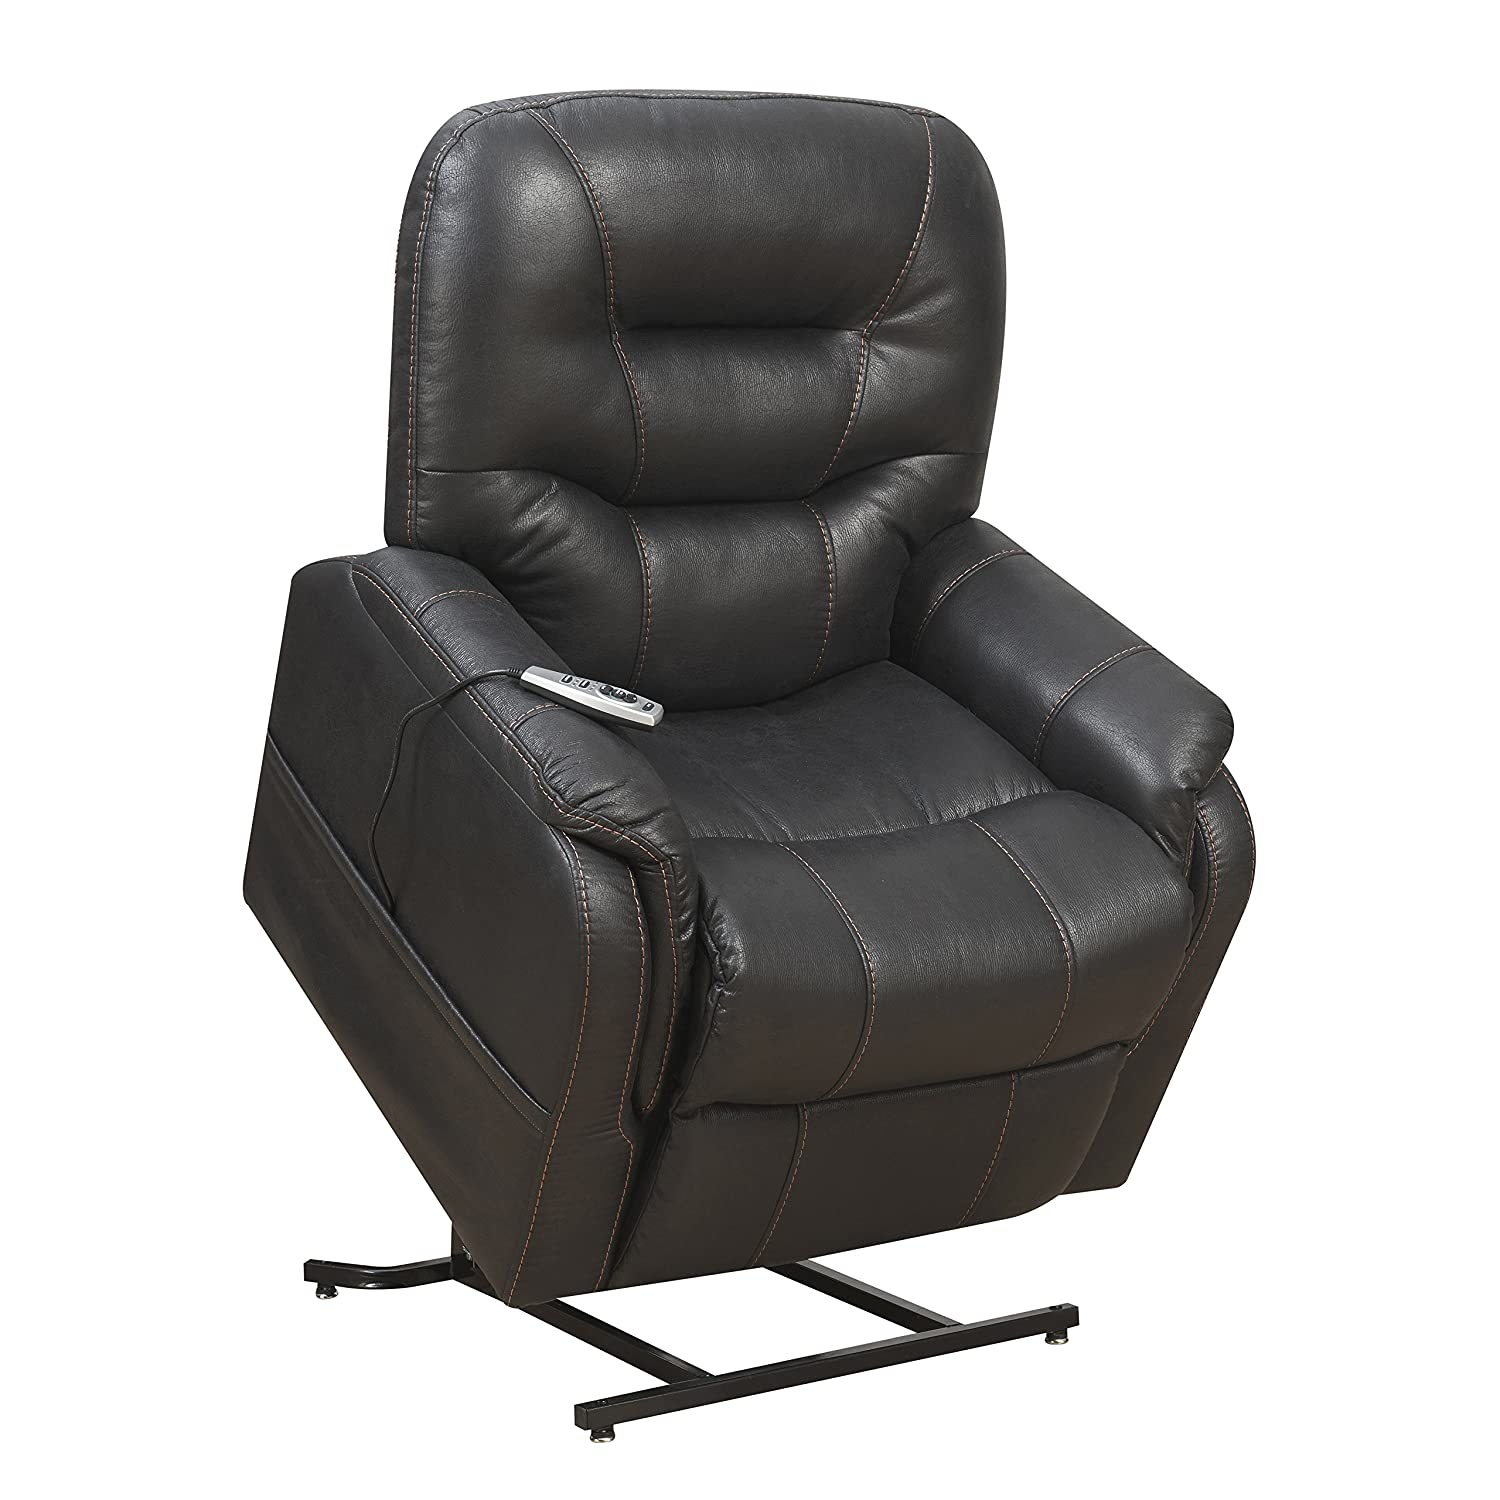 chairs recliner room product coffee texas chair power up lift living samir discount